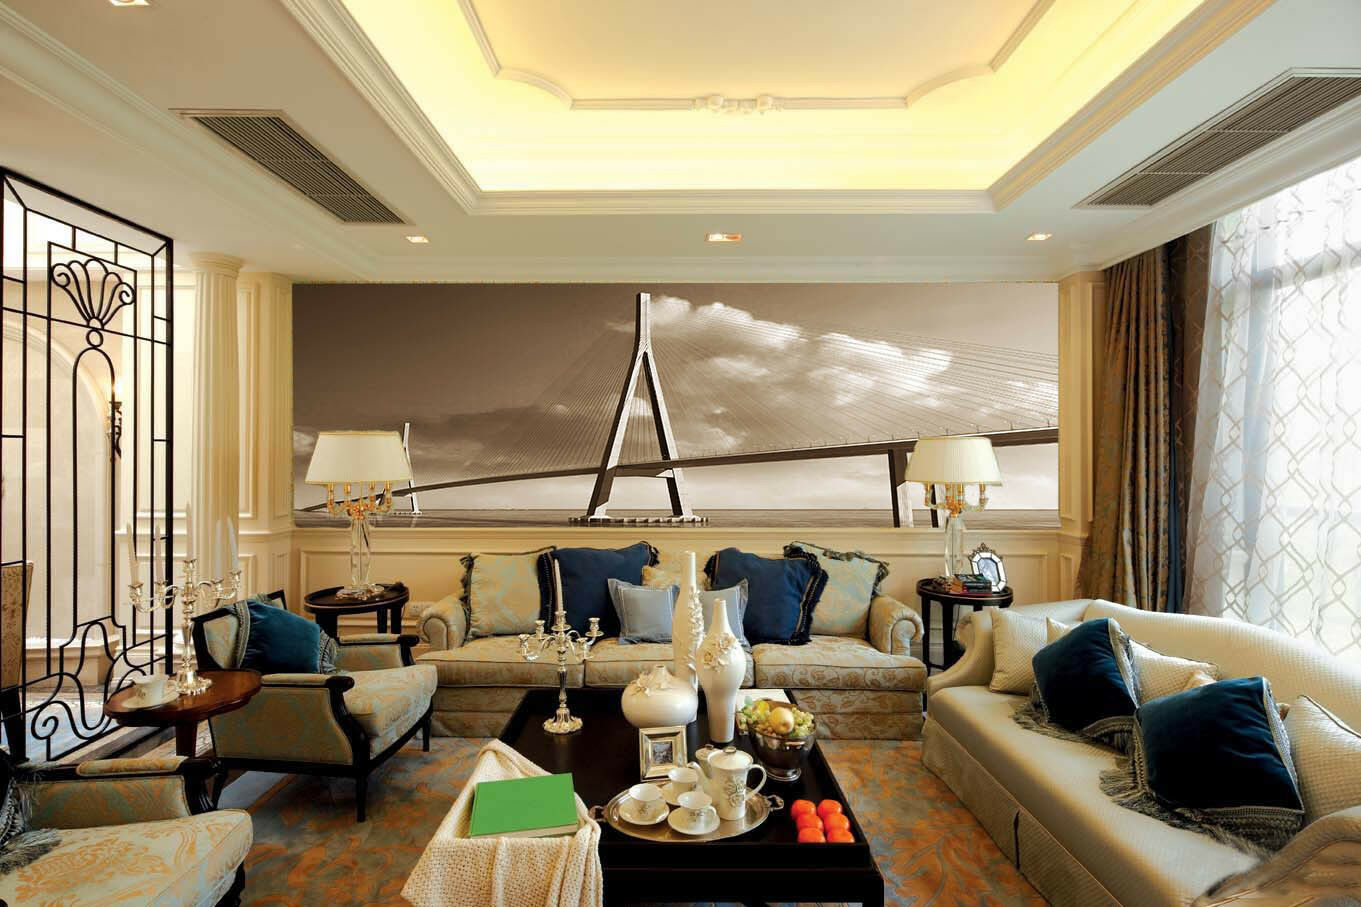 3D Sky Ocean Bridge 45 Wall Paper Wall Print Decal Wall Deco Indoor Mural Lemon